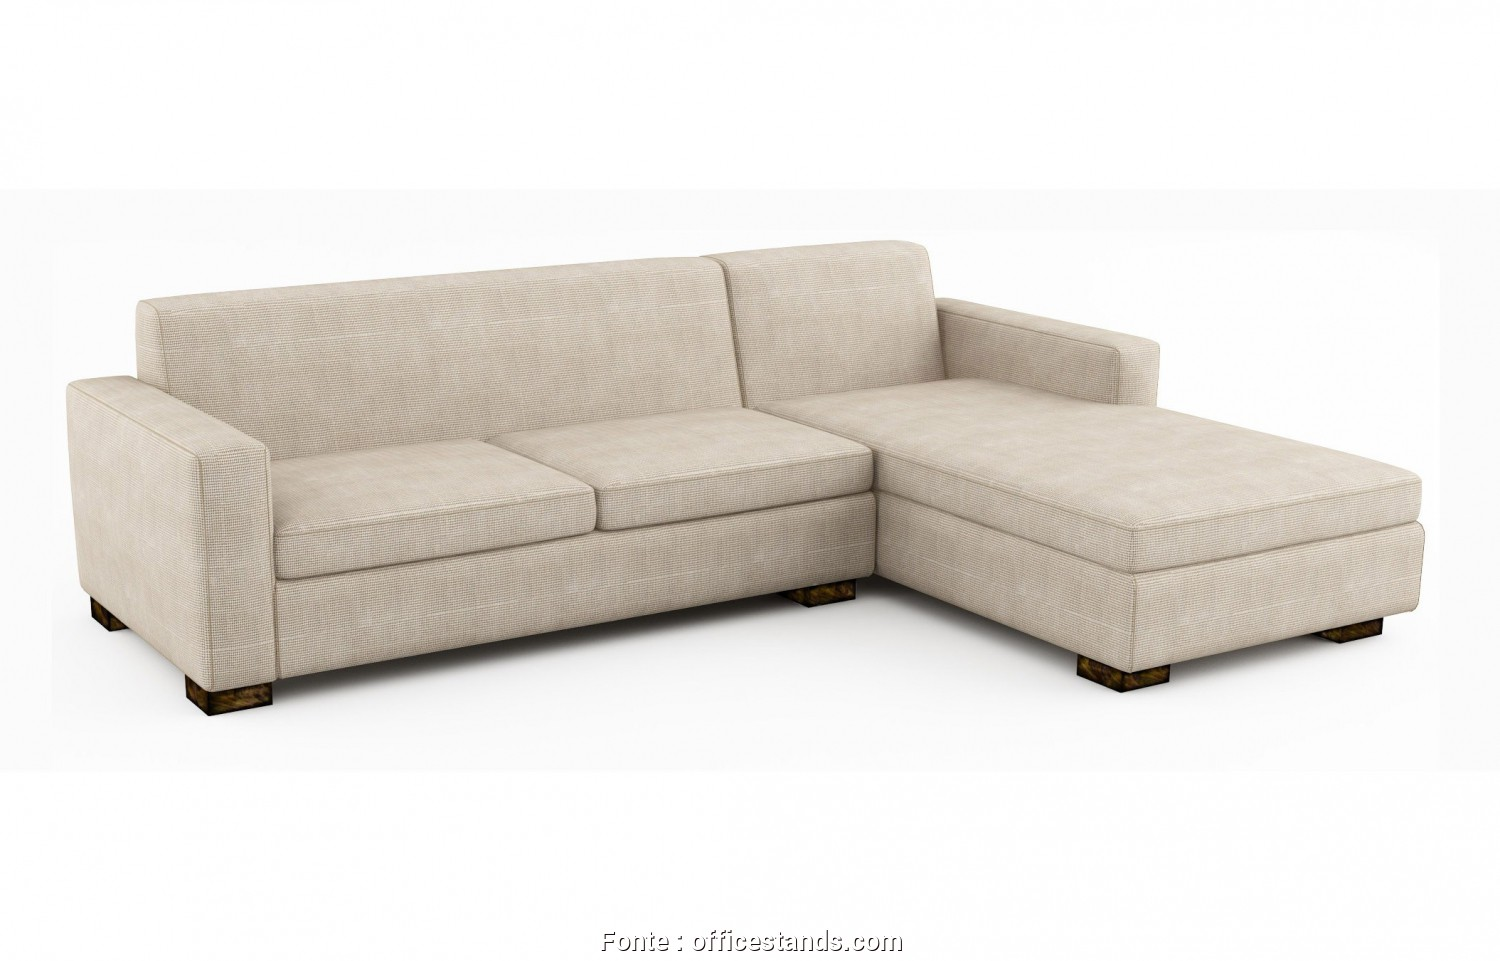 Ikea Backabro Sofa Review, Eccezionale Ikea Vilasund, Backabro Review Return Of, Sofa Bed